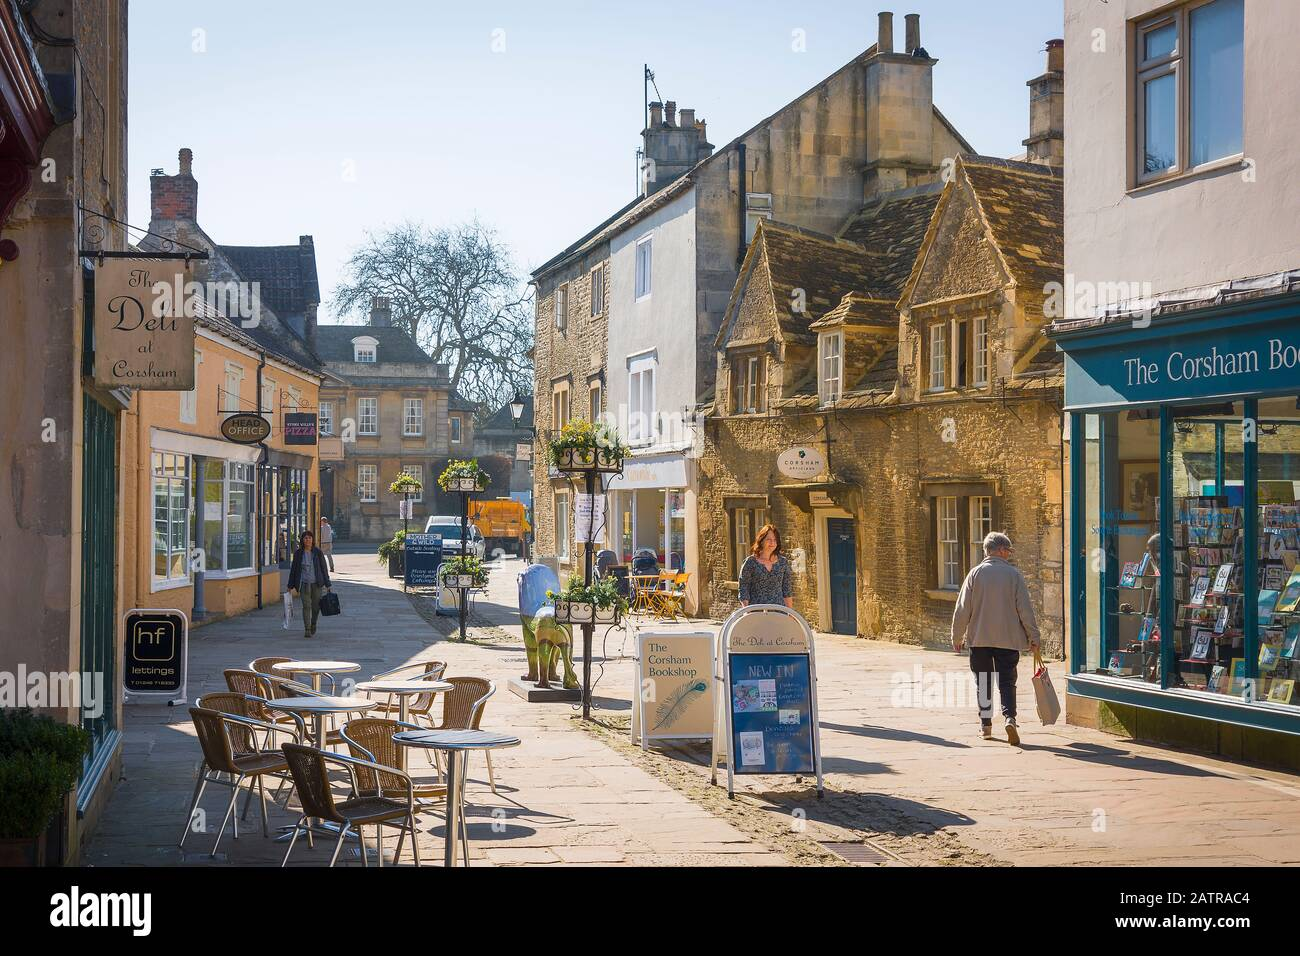 A quiet period in the High Street in Corsham town Wiltshire England UK Stock Photo